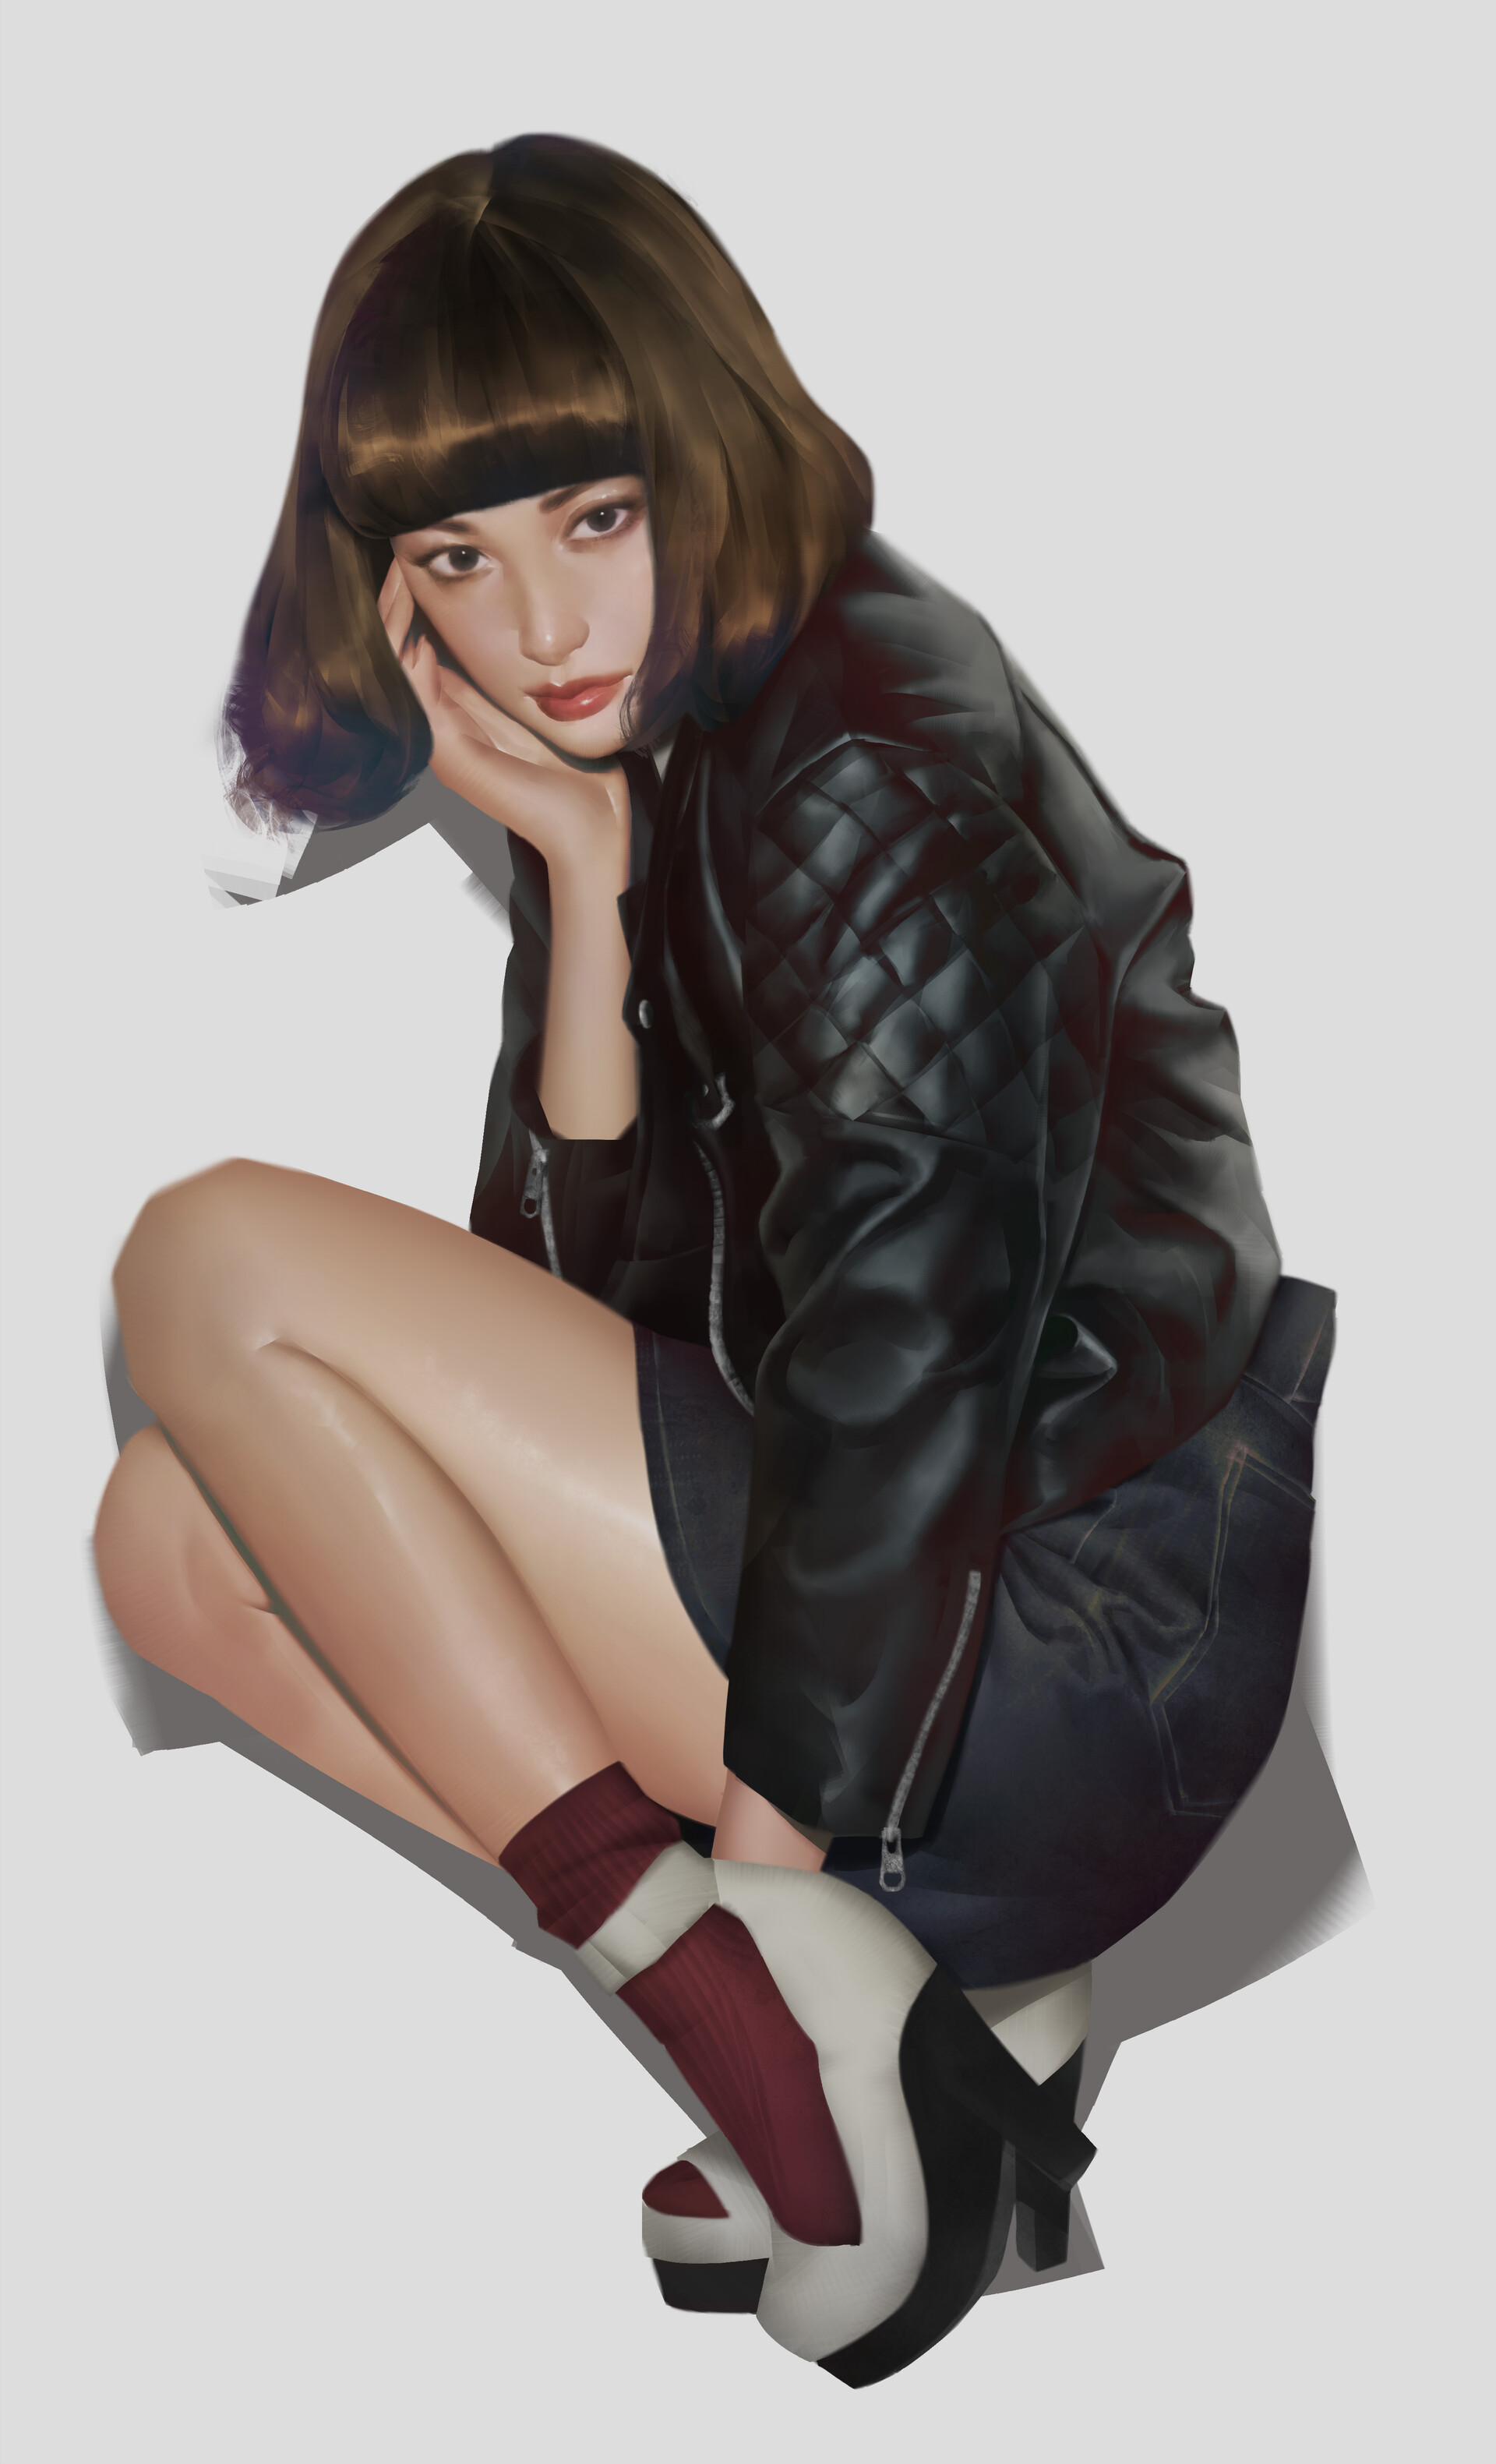 Tim Liu Digital Painting Digital Art Portrait Display Hand On Face Women Short Hair Brunette Legs To 1920x3162